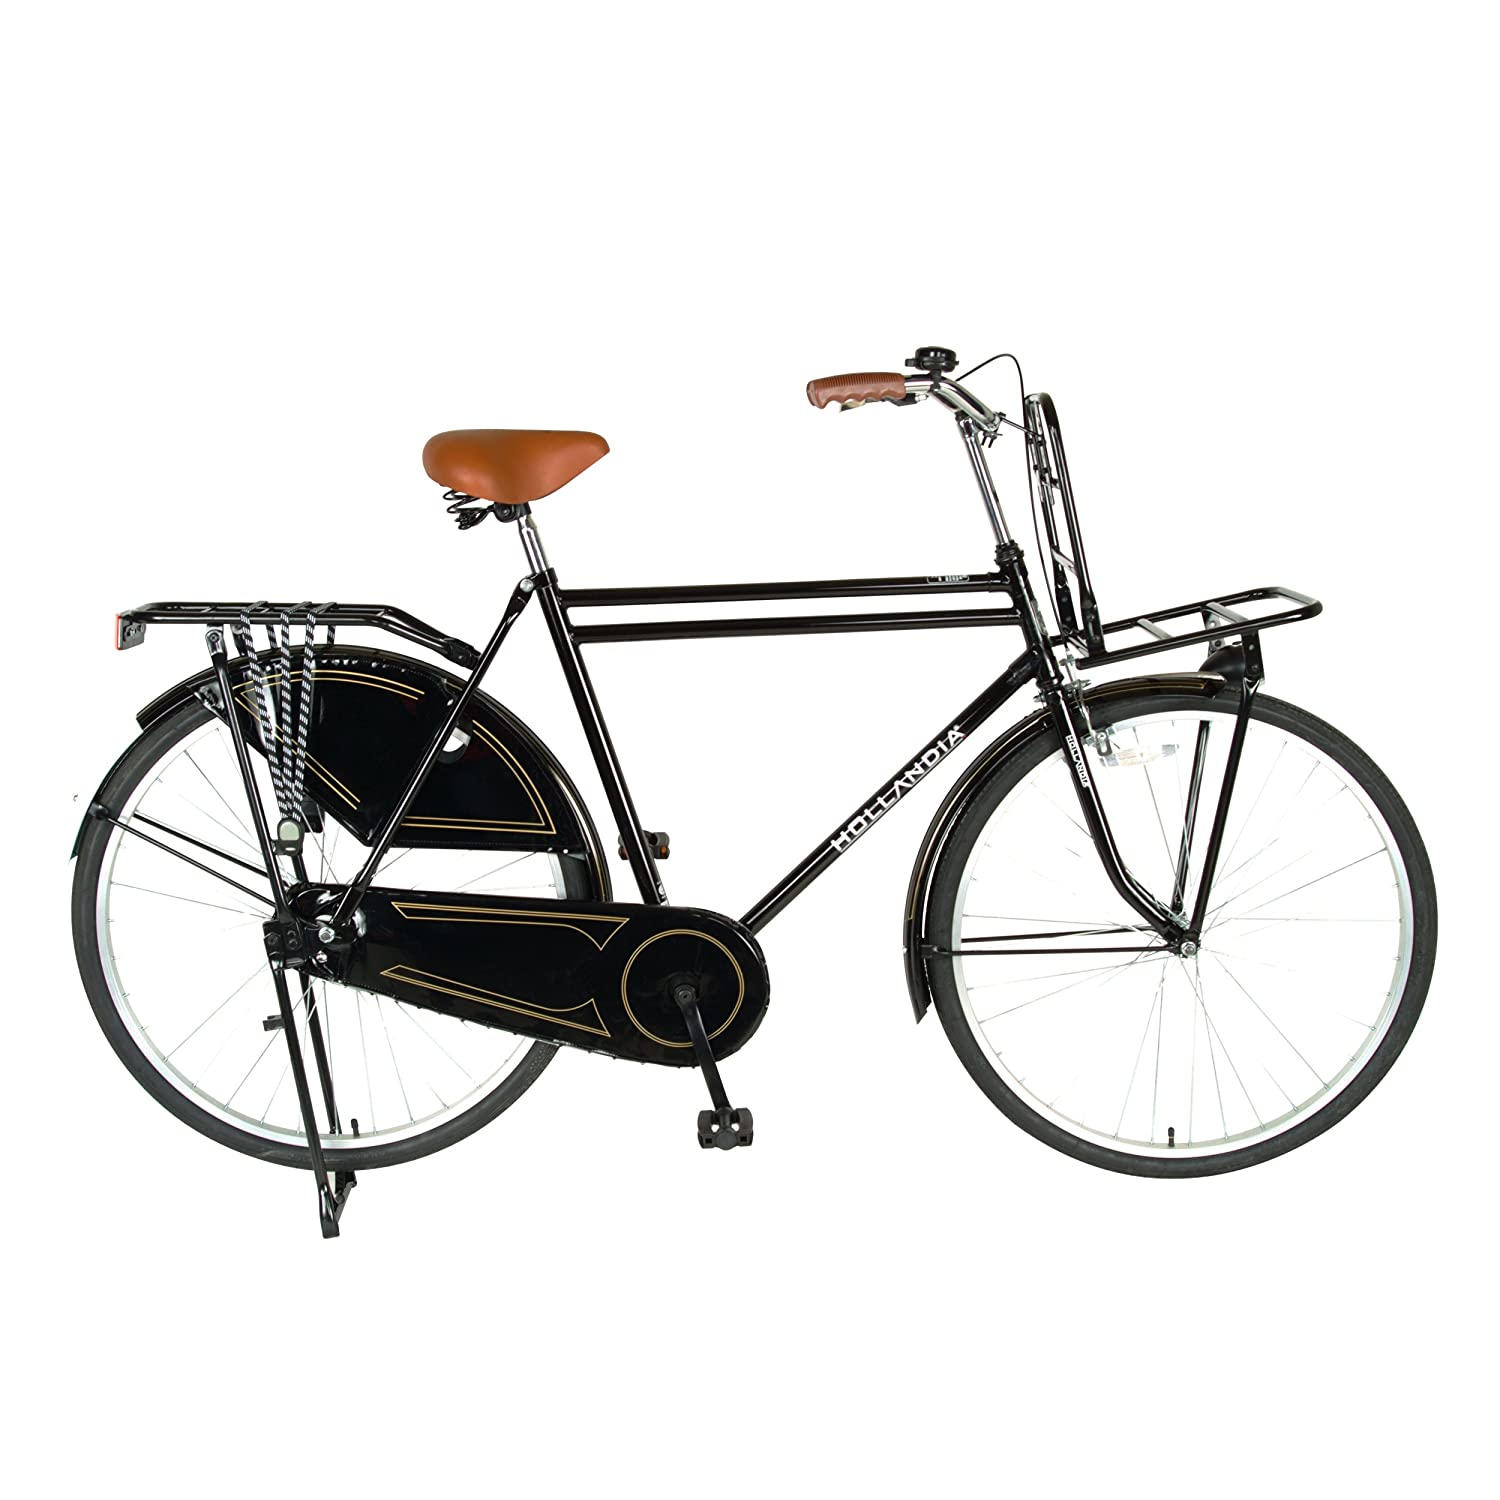 Comfort Bikes For Men Hollandia Opa Citi Bicycle